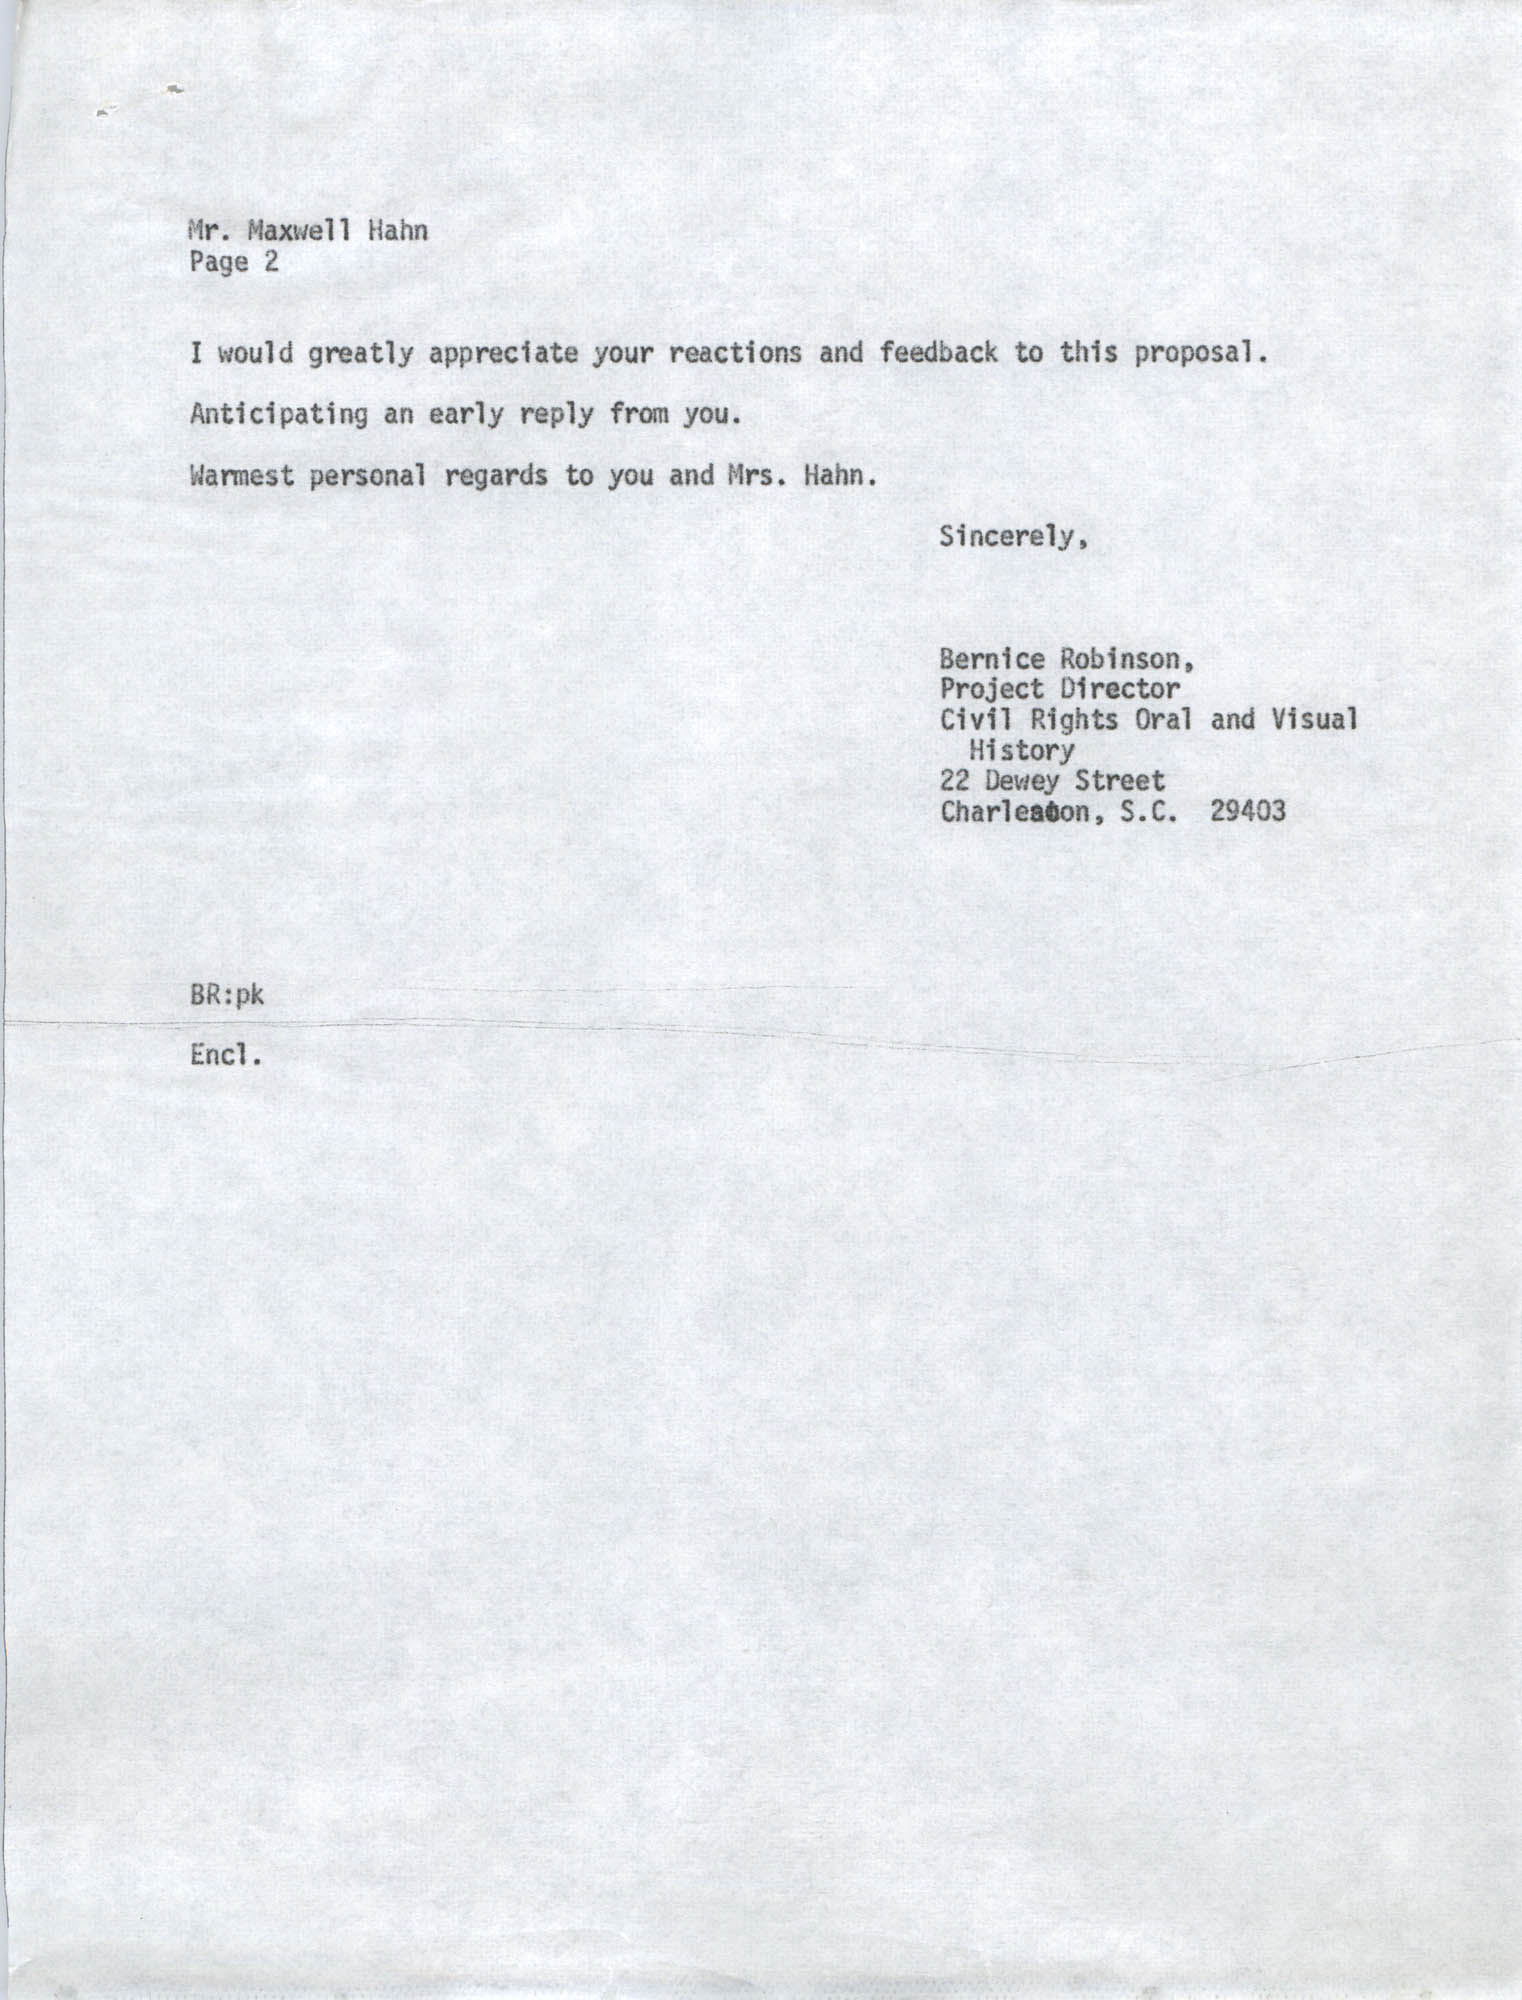 Letter from Bernice Robinson to Maxwell Hahn, May 4, 1973, Draft Page 2